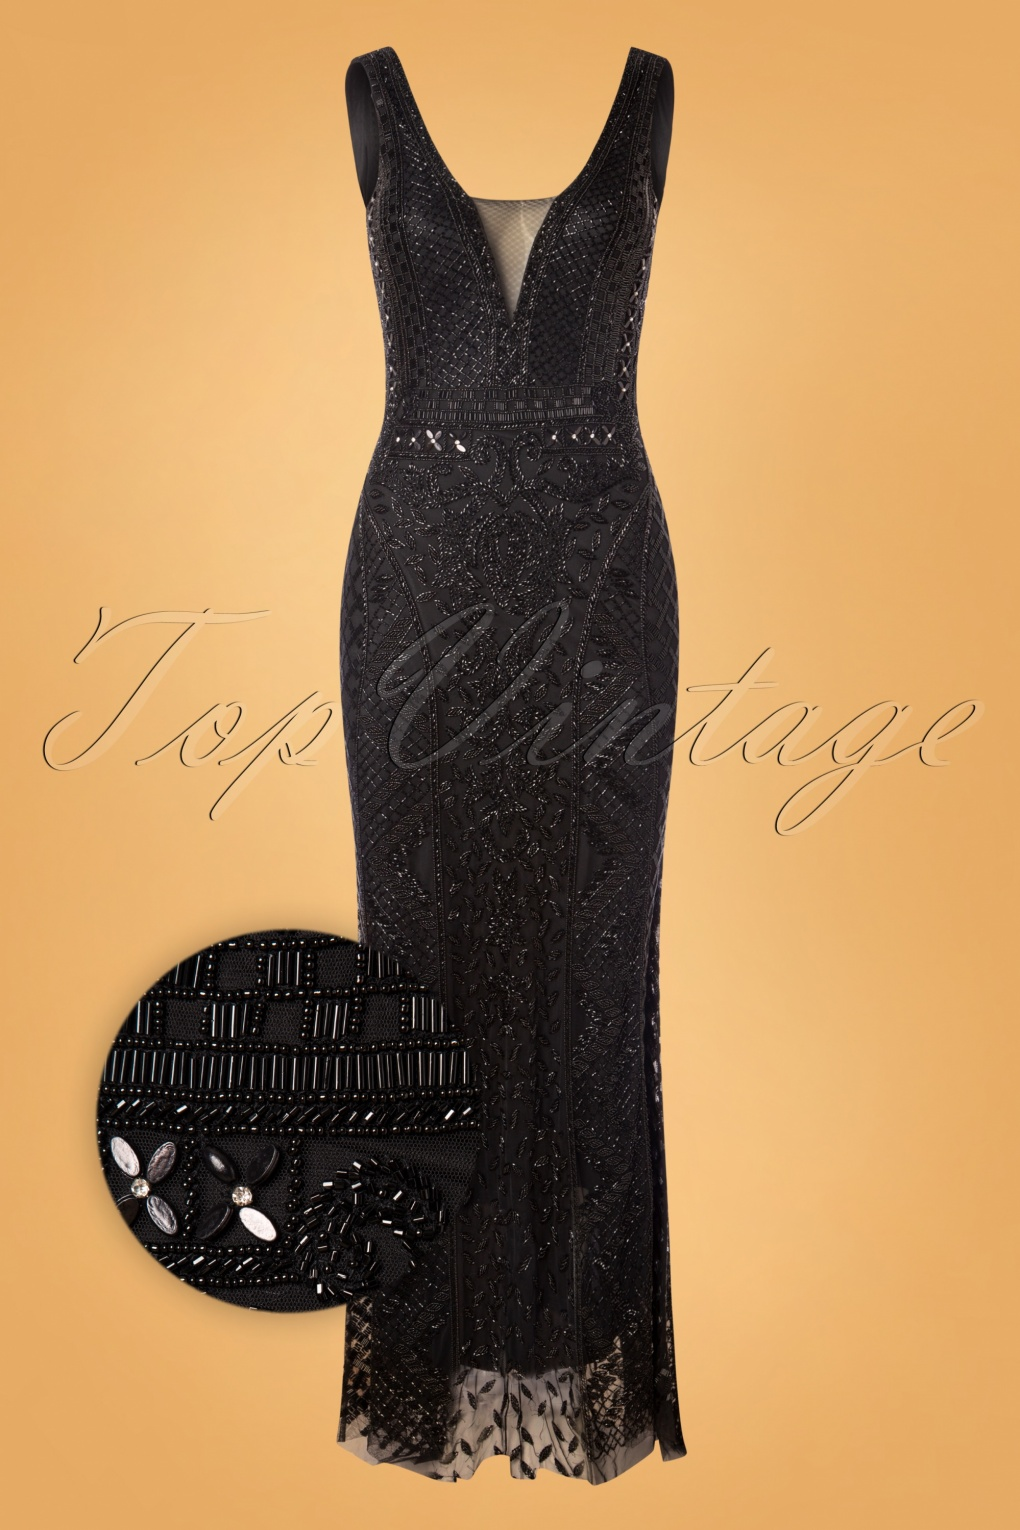 1920s Dresses UK | Flapper, Gatsby, Downton Abbey Dress 20s Grace Embellished Maxi Dress in Black £225.89 AT vintagedancer.com